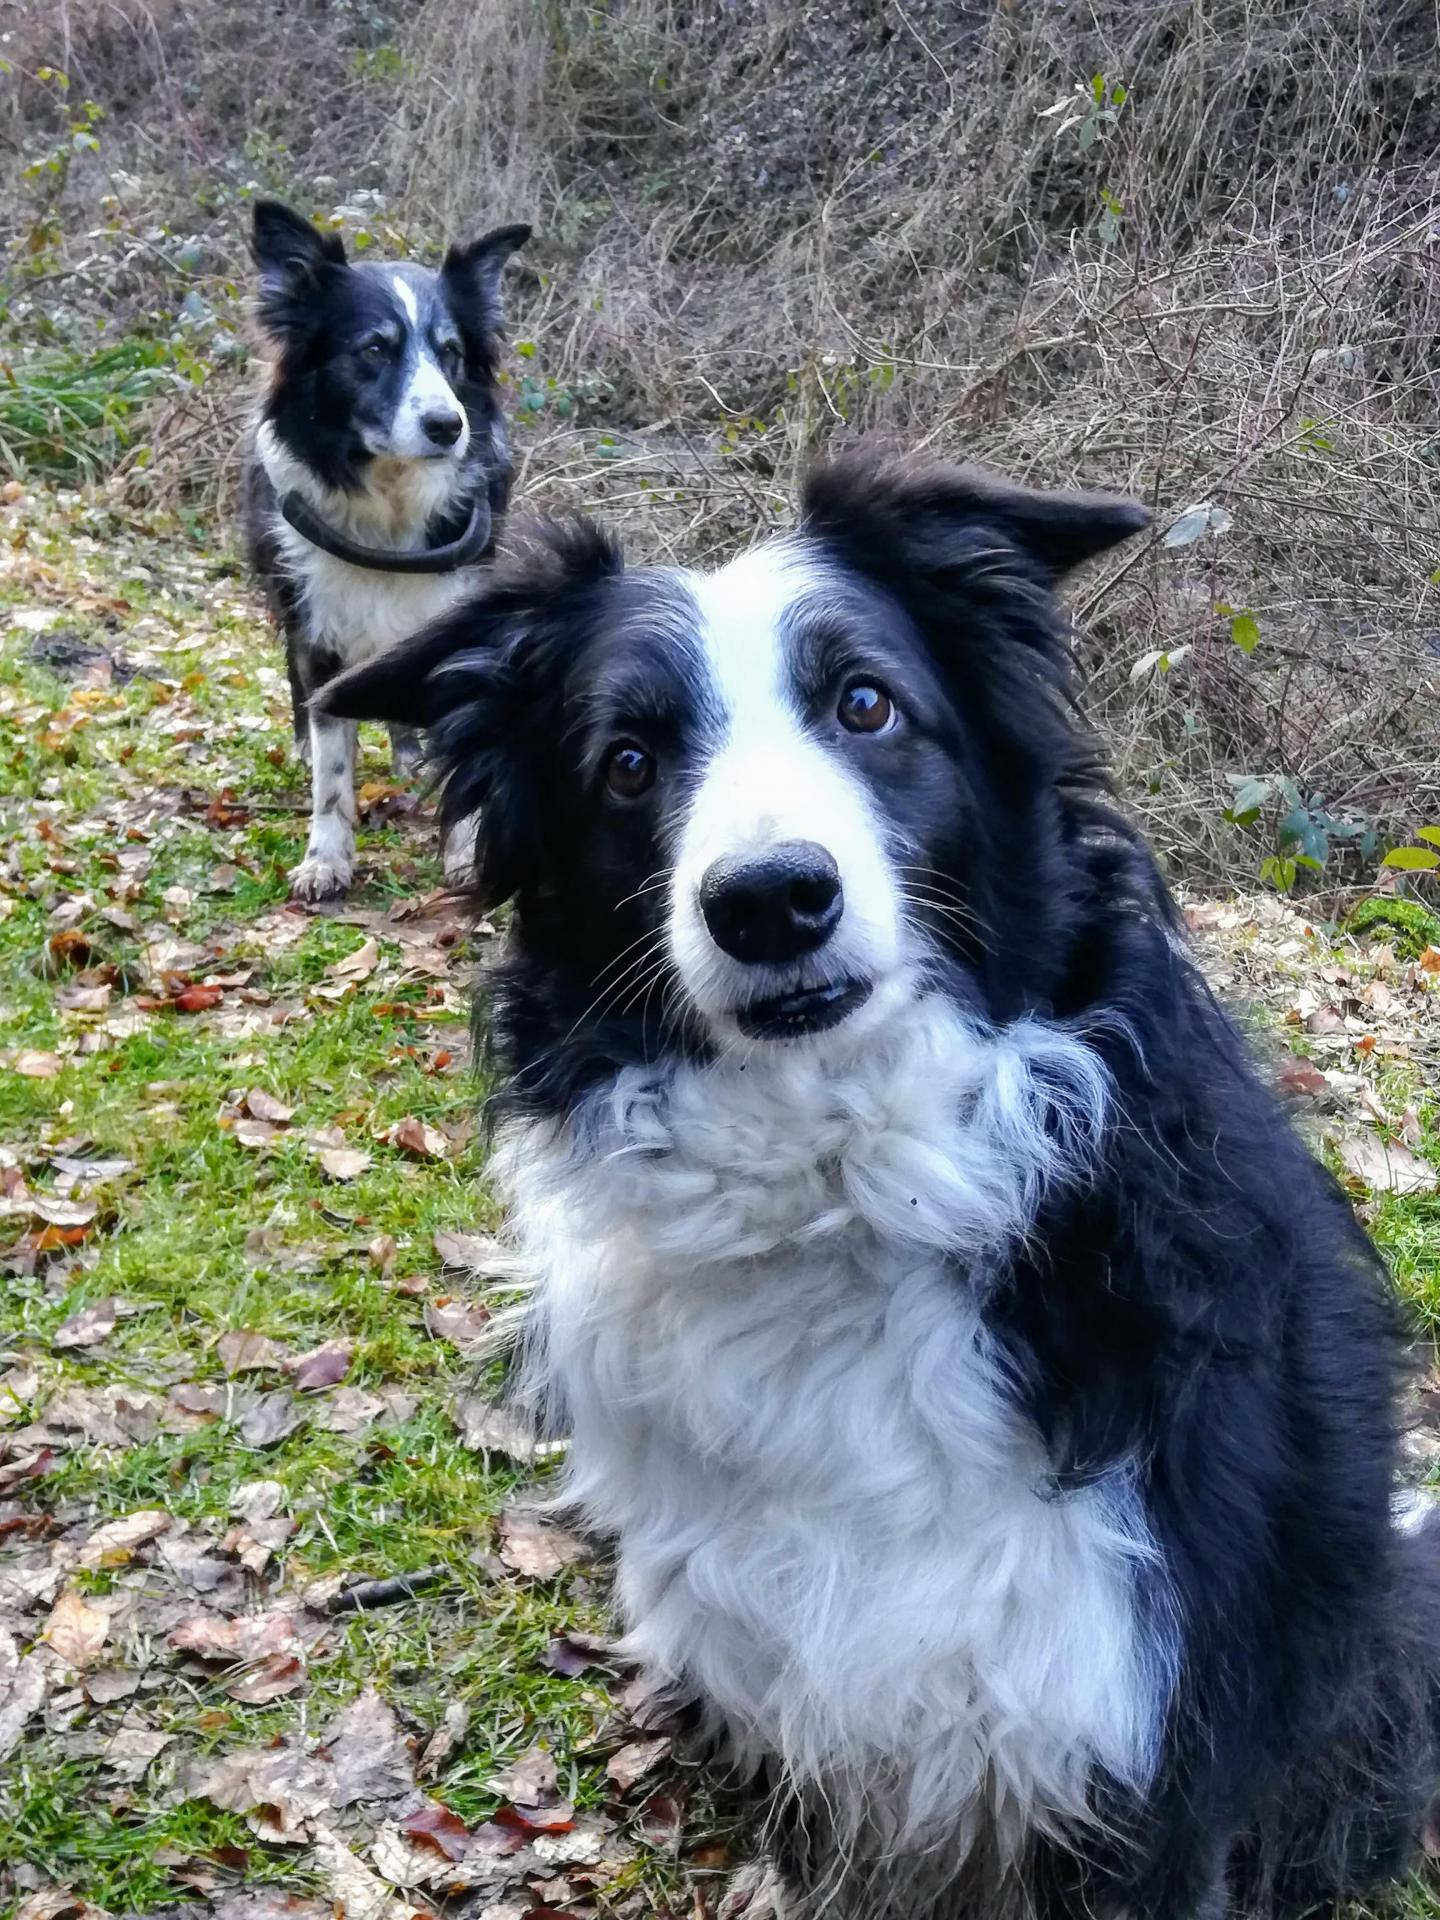 Research: From puppyhood to senior age